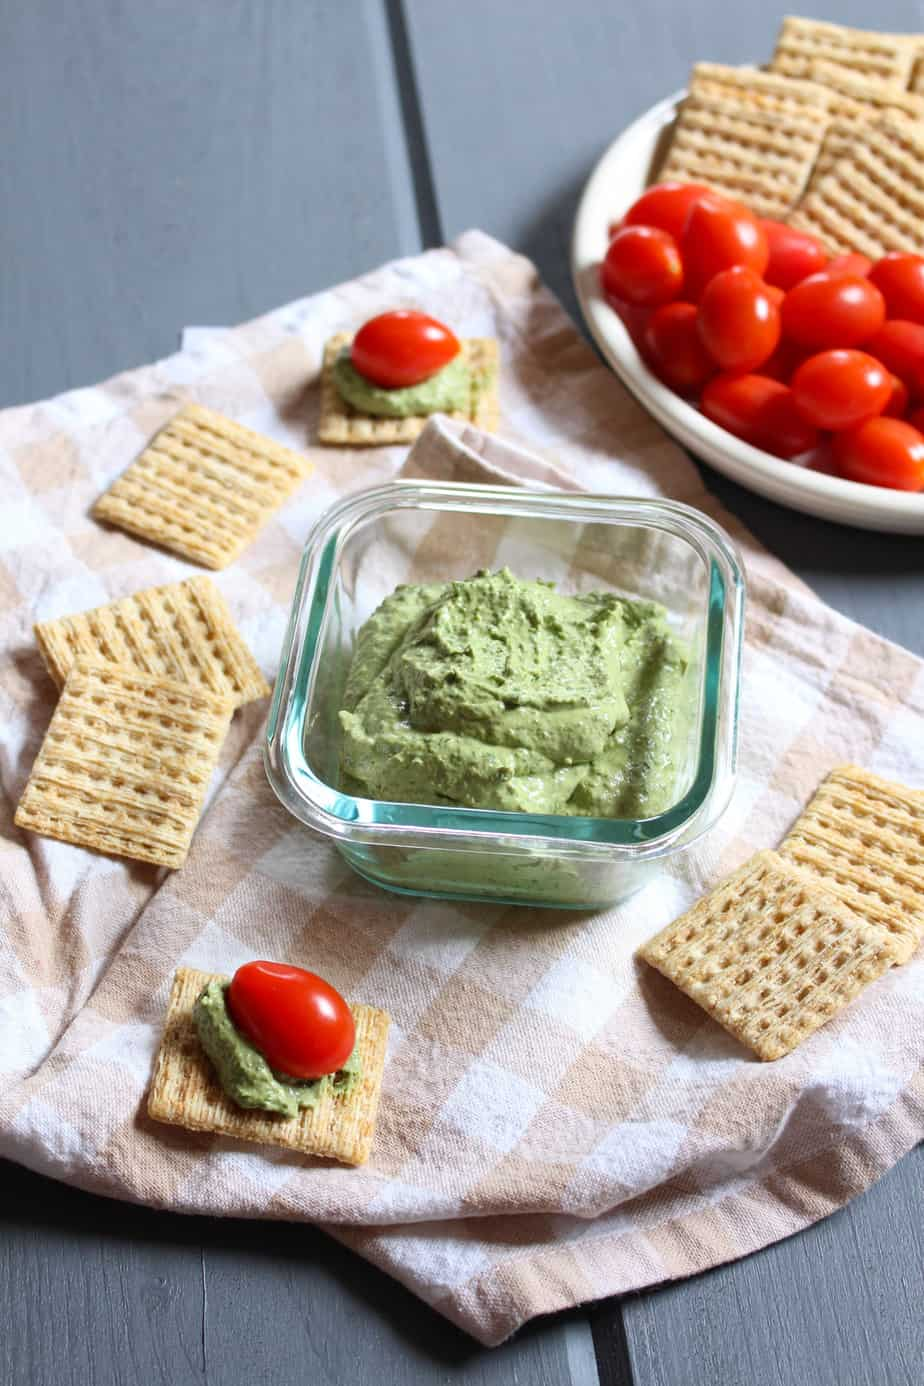 Easy 3-Ingredient Basil Cream Cheese Dip | Frugal Nutrition